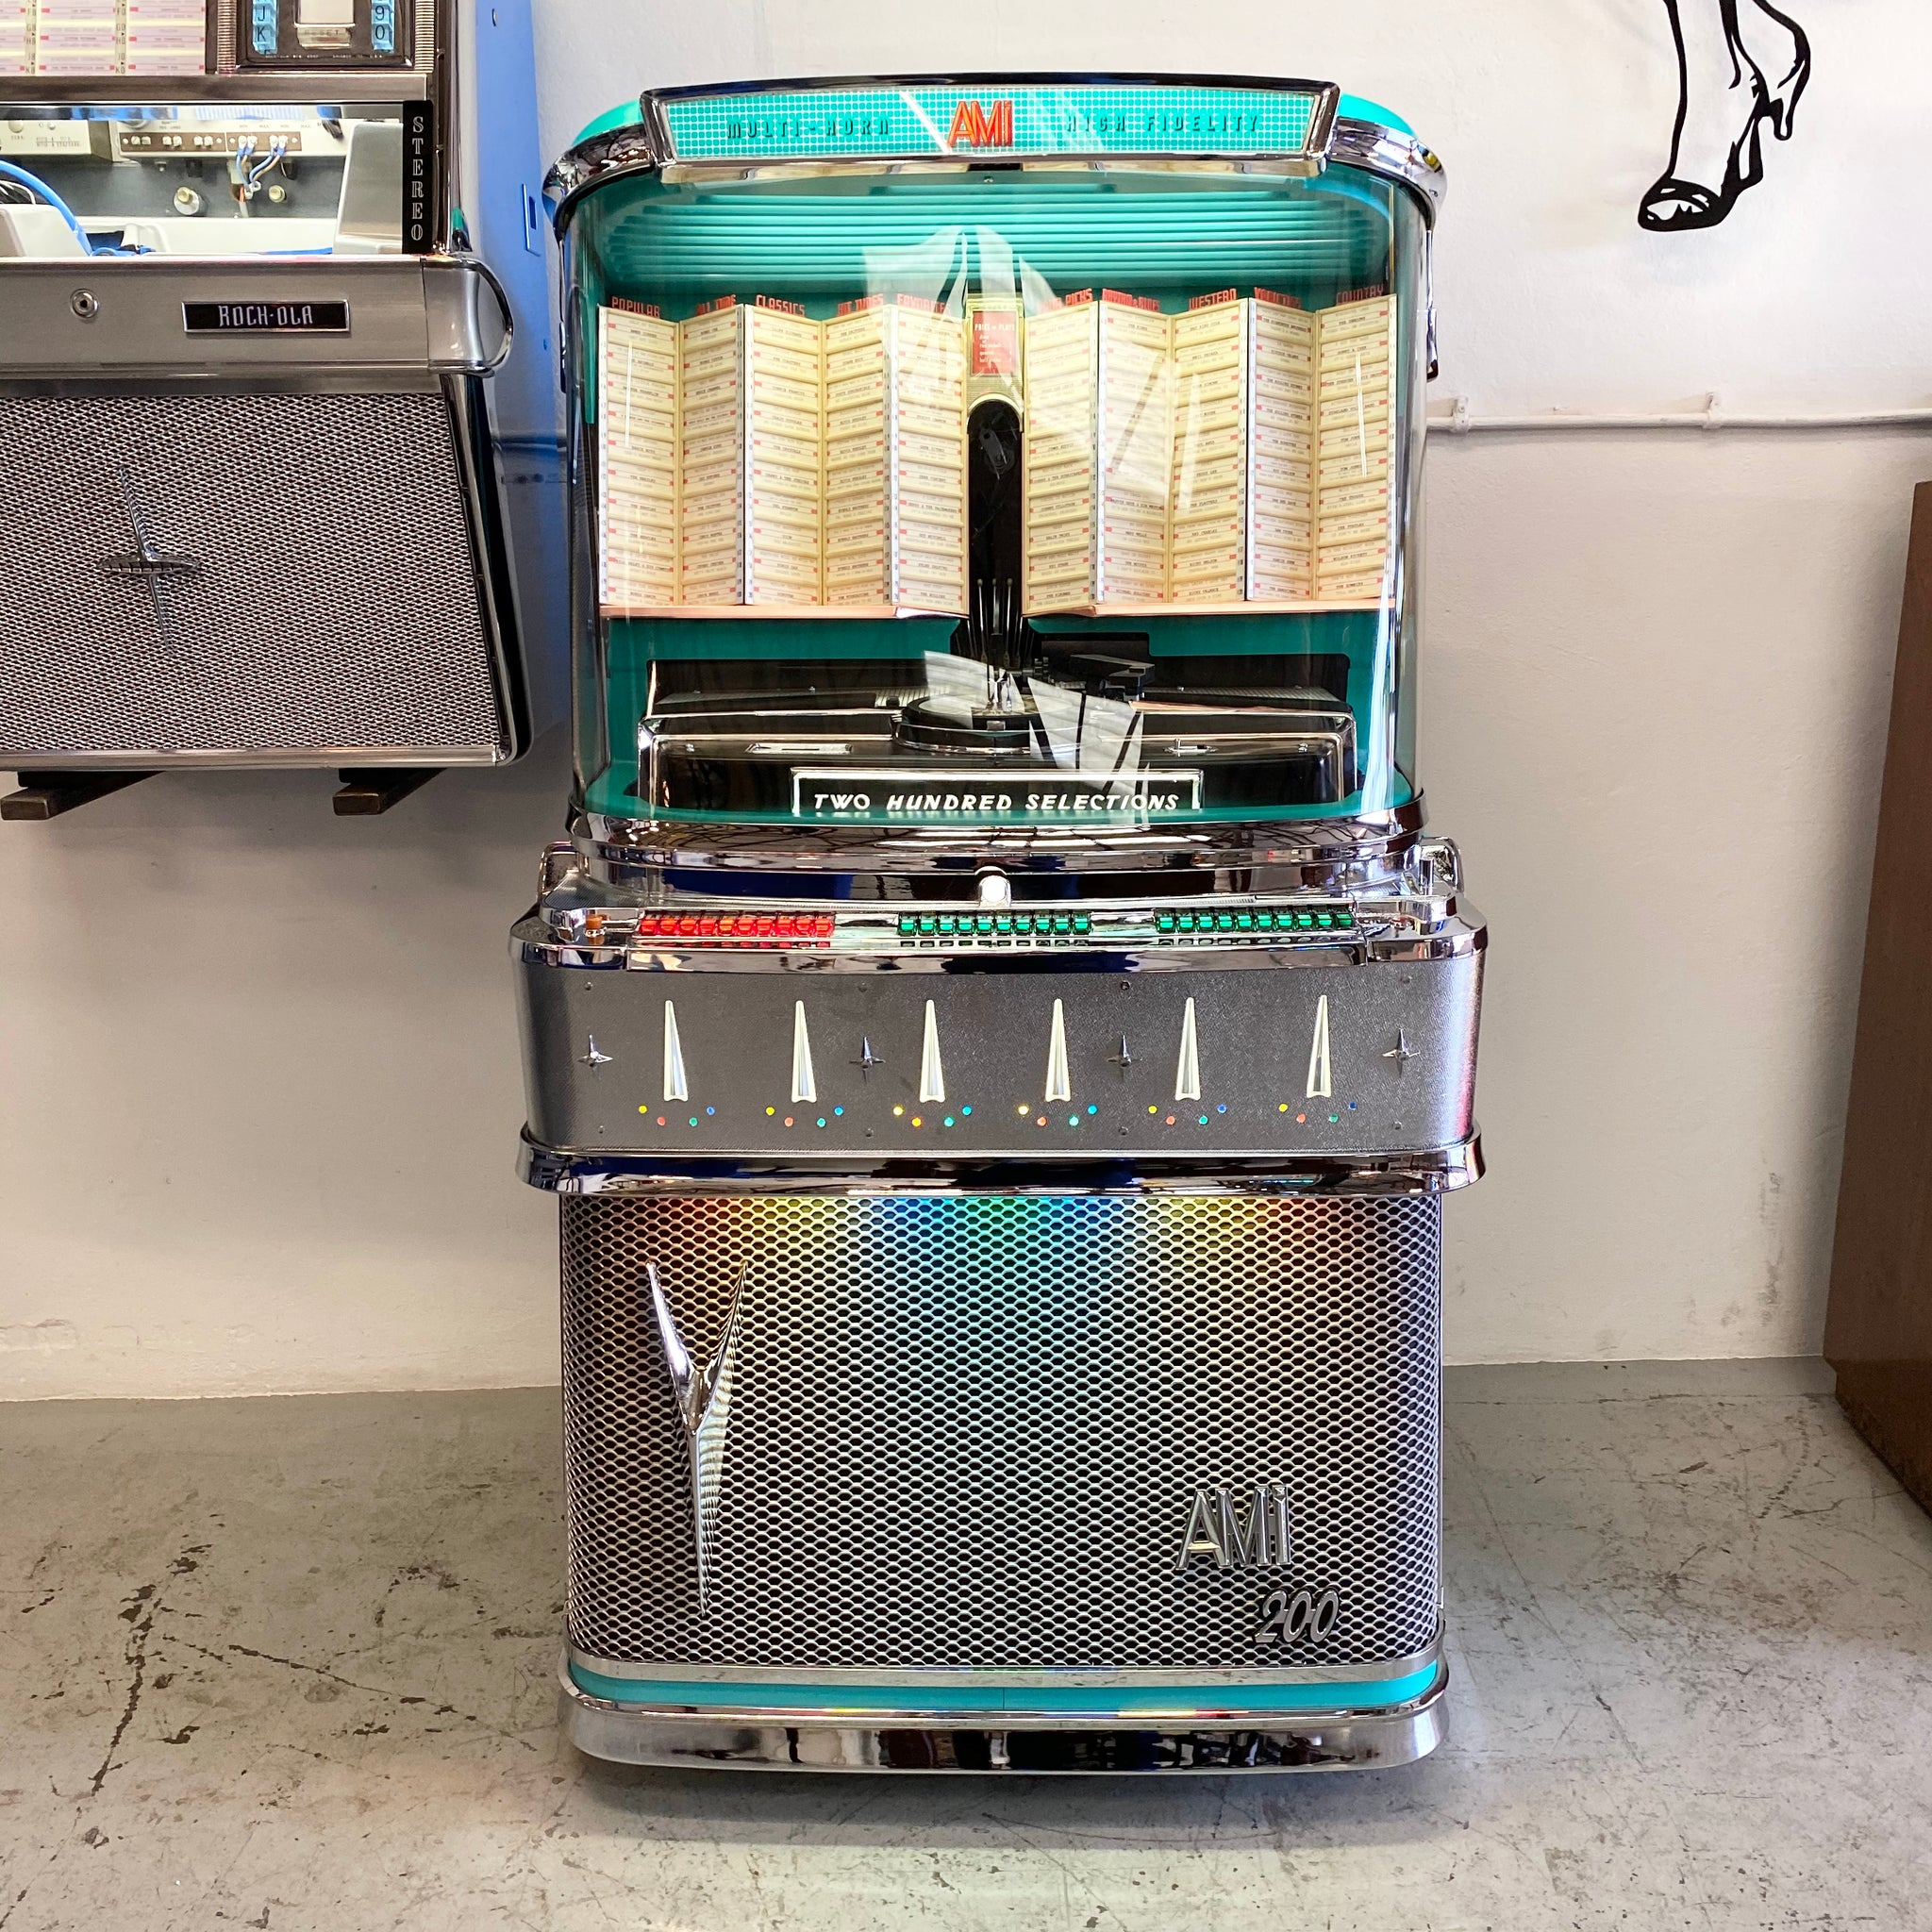 1958 AMI I 200 Vinyl Jukebox with Spearmint Trim